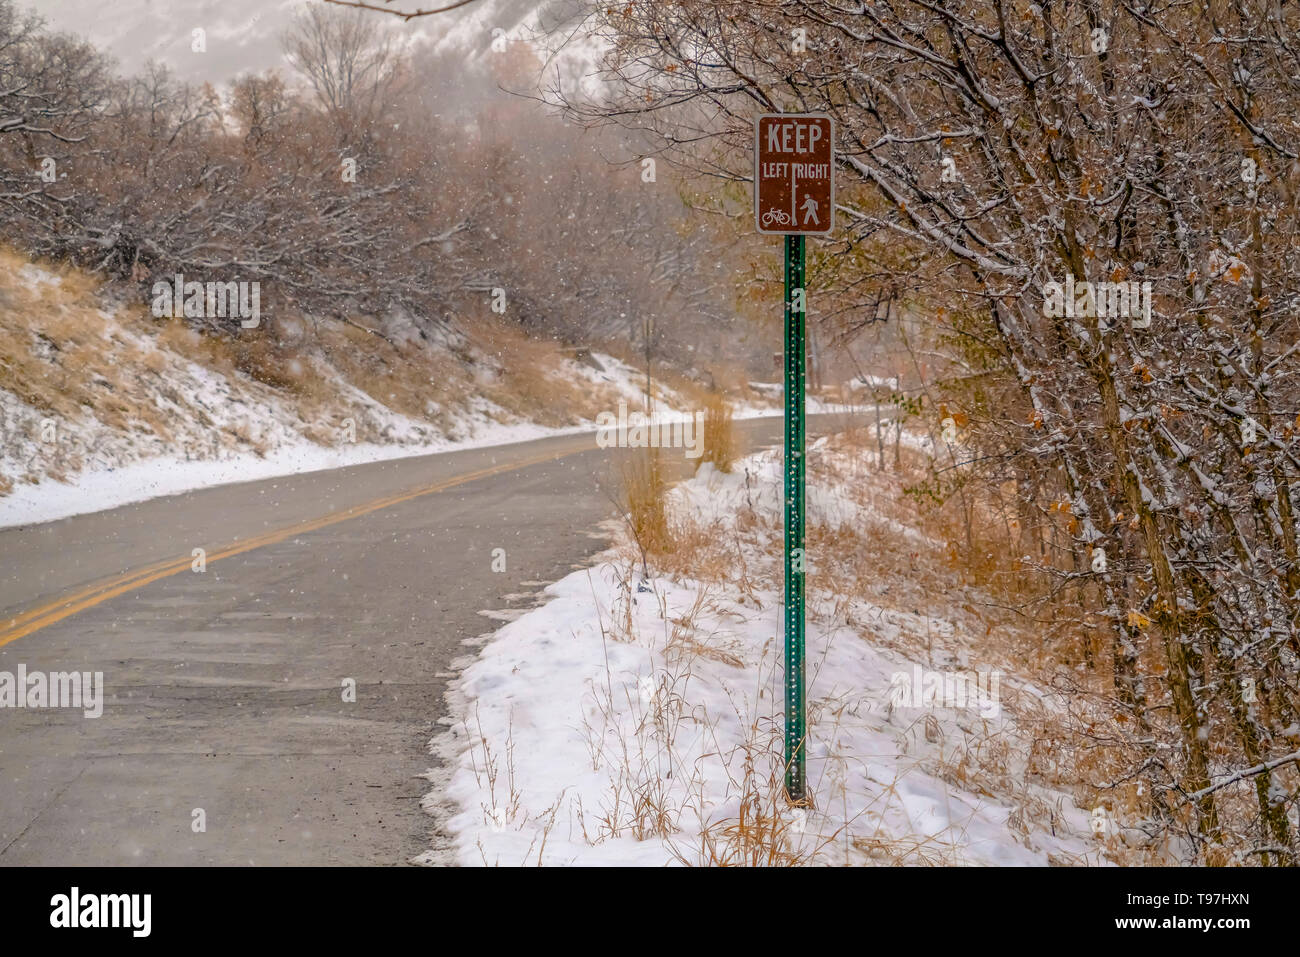 Winter road with traffic sign in Salt Lake City Stock Photo